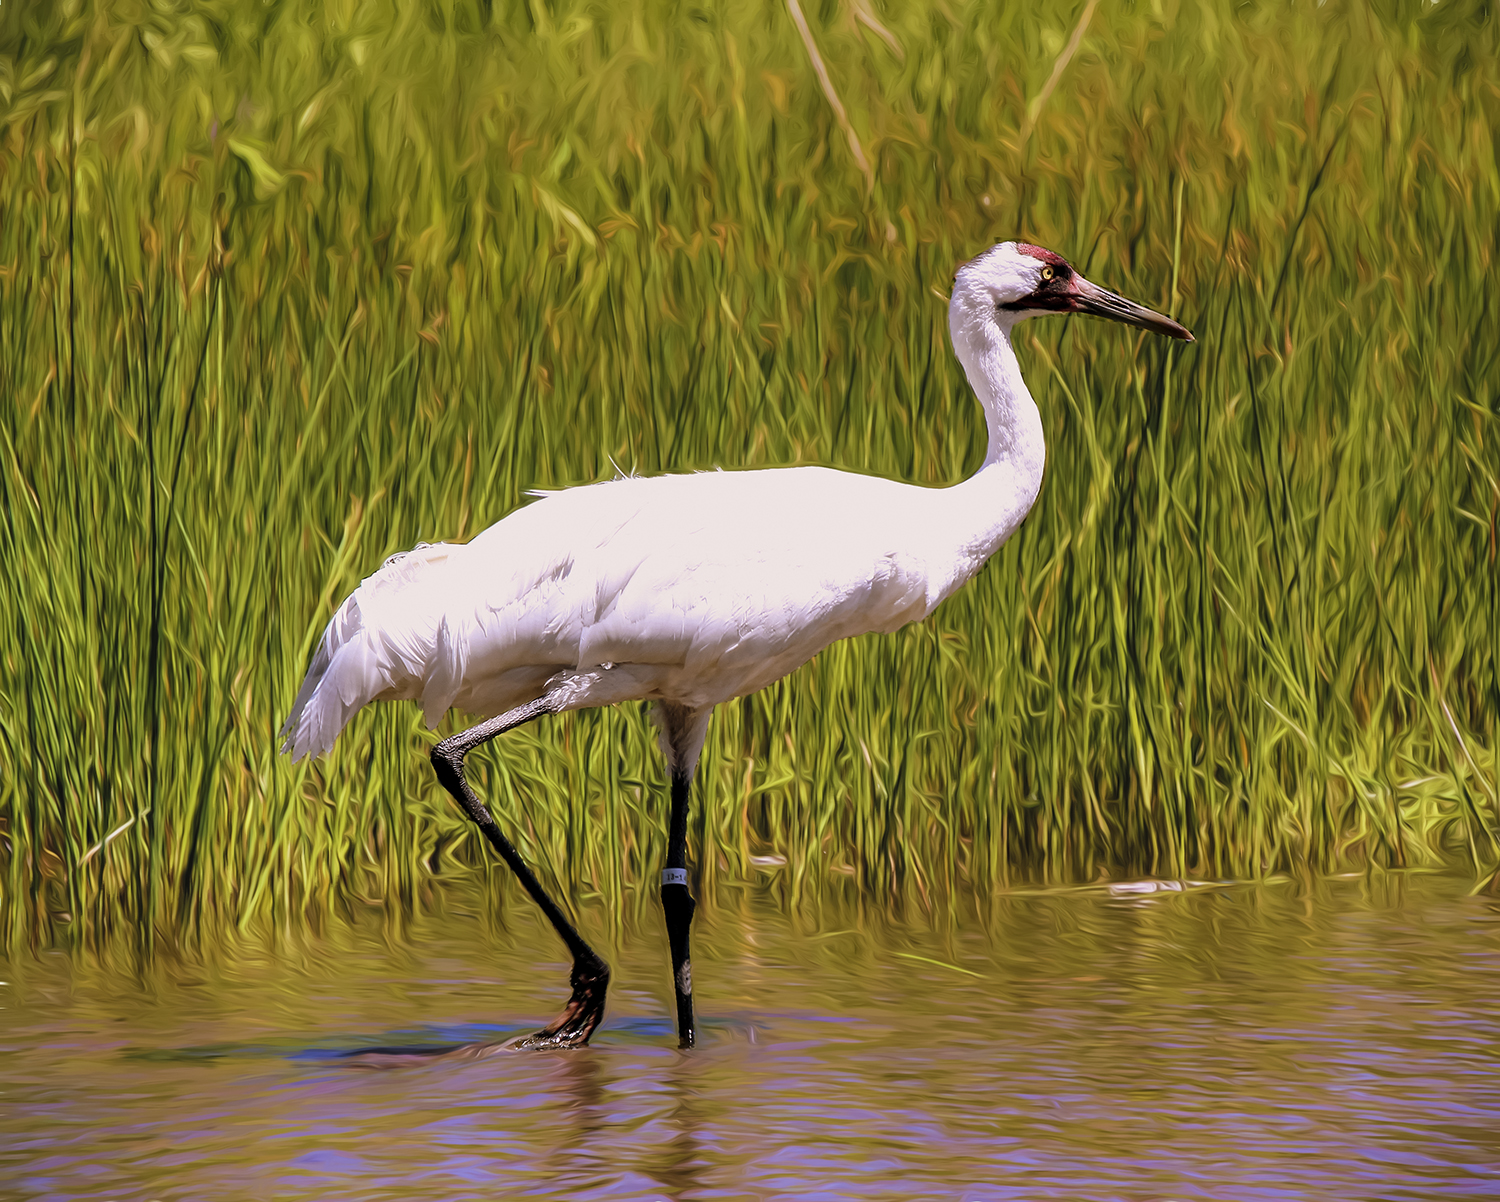 Patrick Fleury - Whooping Crane in Wisconsin